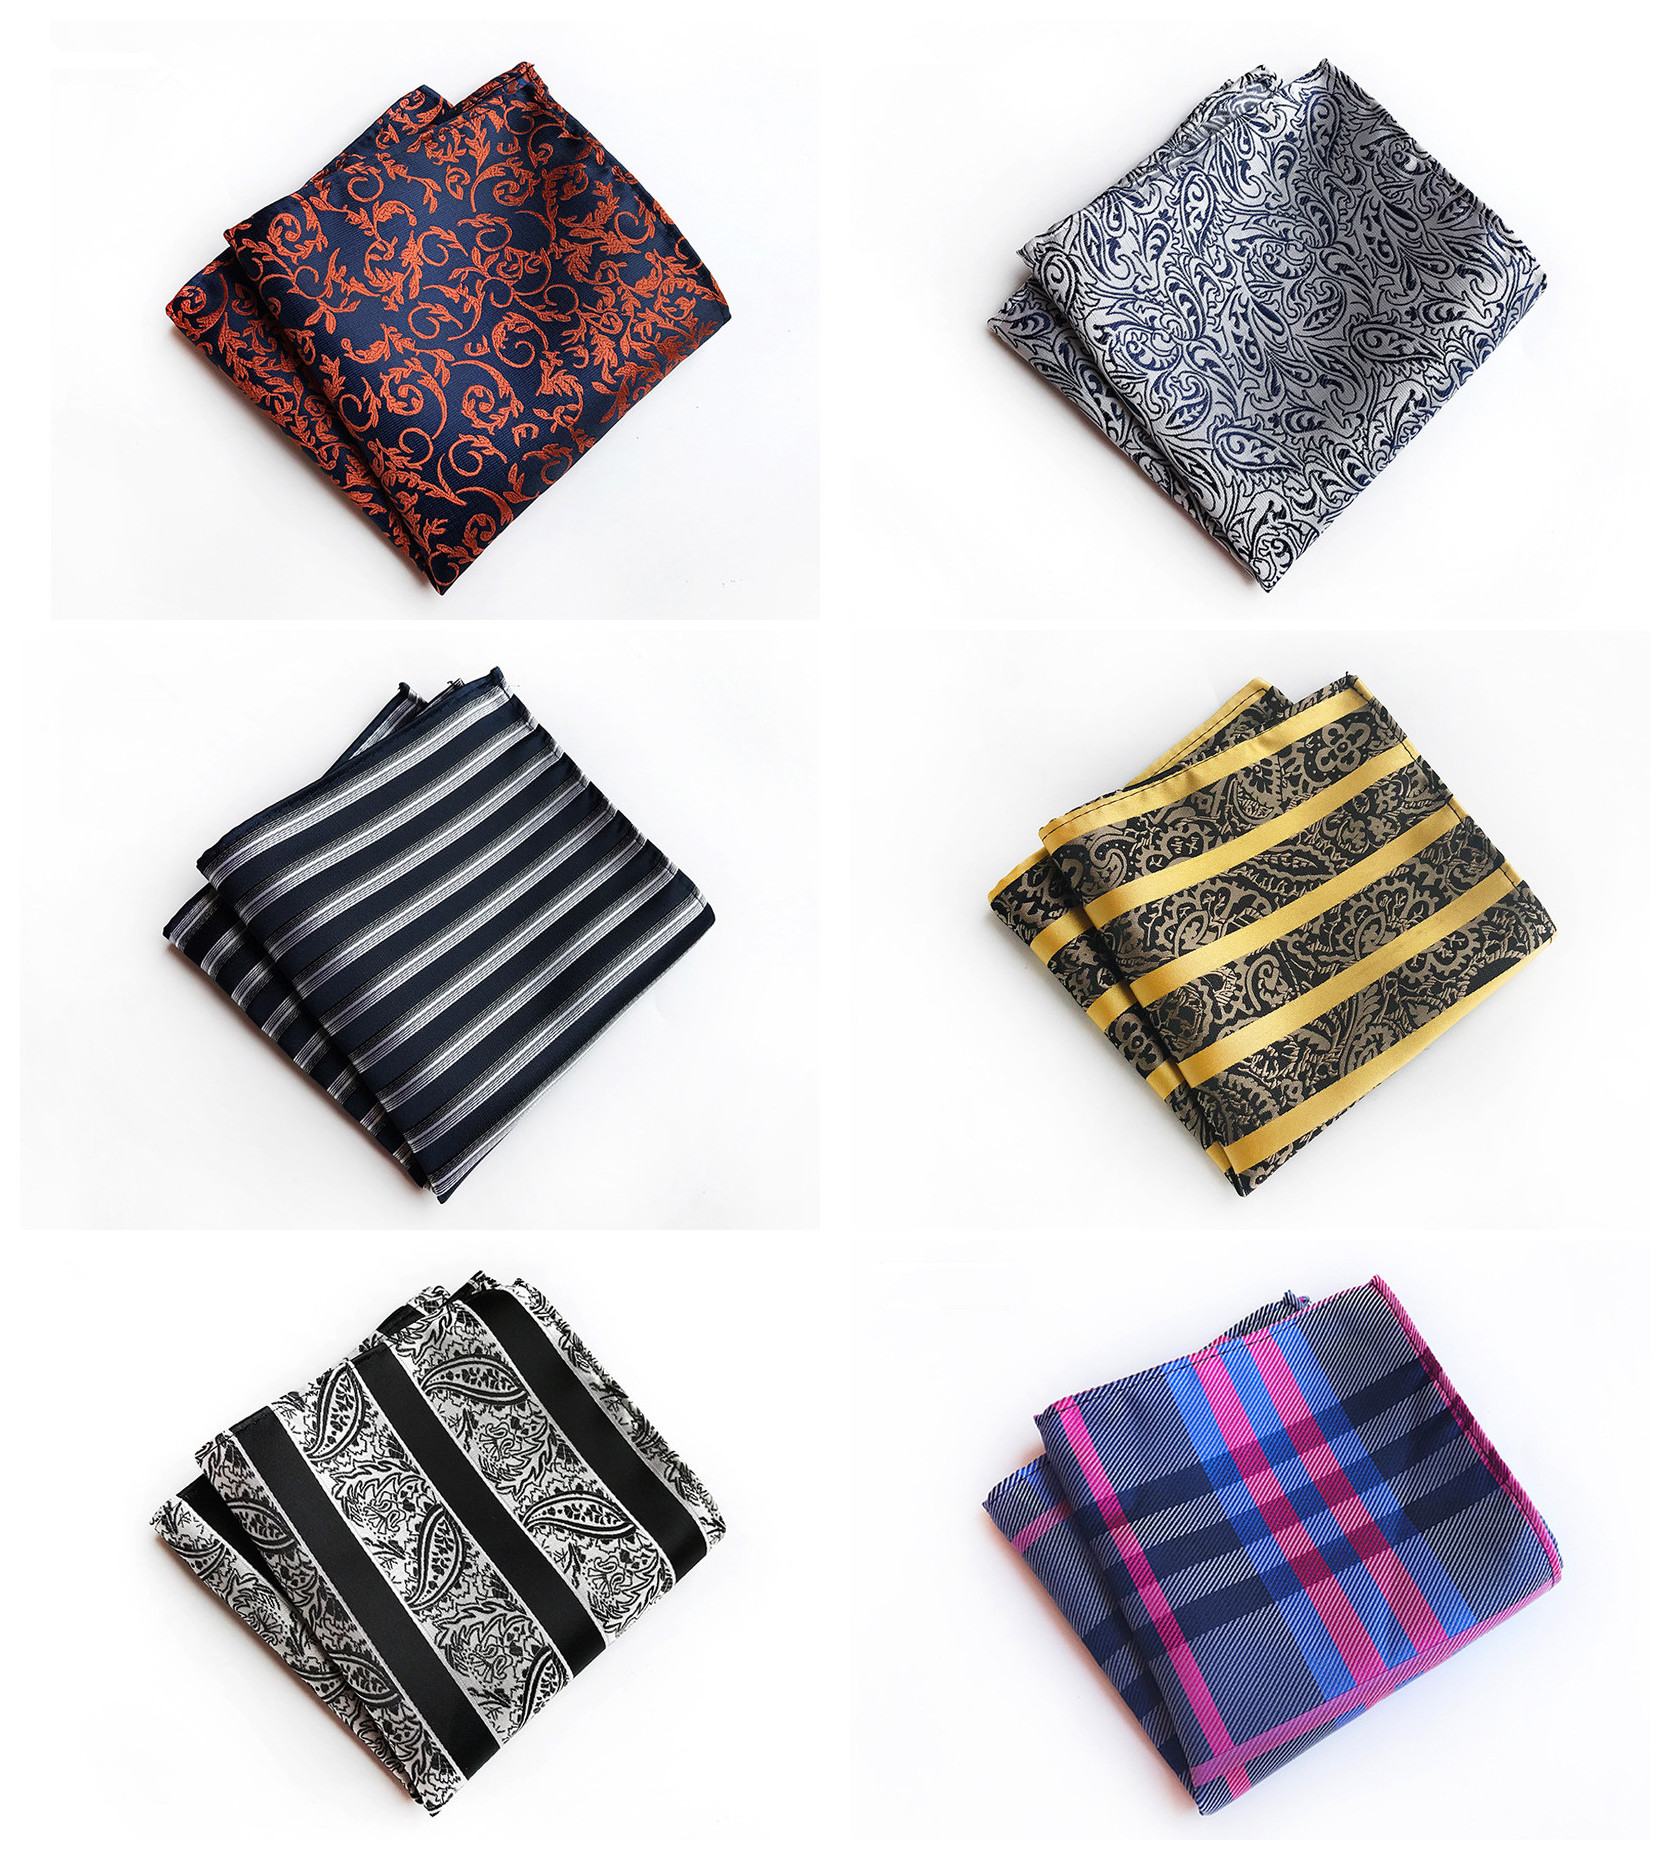 High-end Design Business Men's High Quality Decorative Handkerchief Pocket Towel Fashion Quality Polyester Paisley Pocket Towel